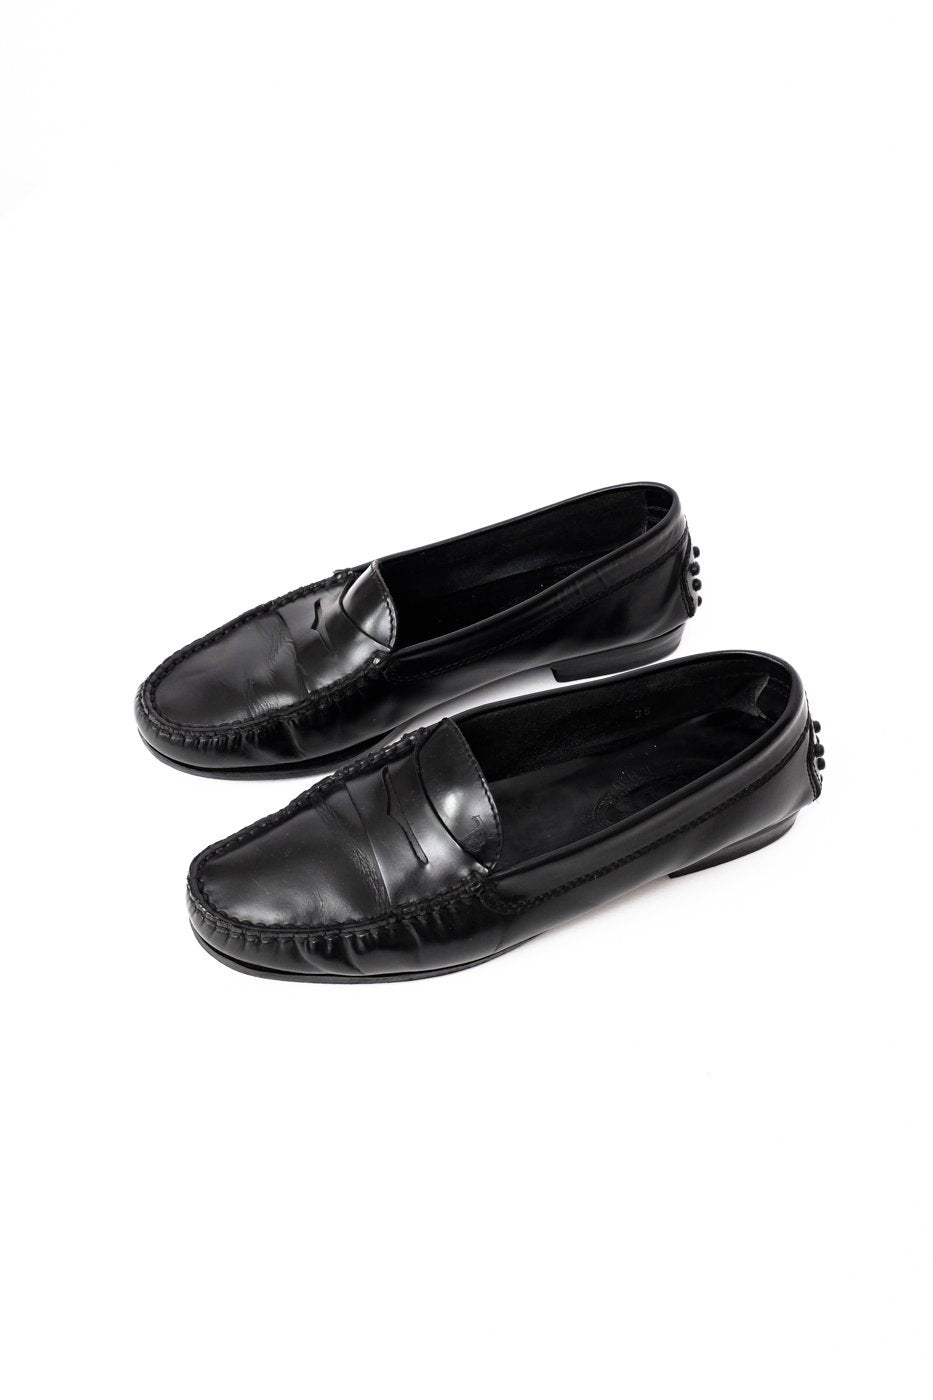 0075_TODS BLACK LEATHER SLIPPERS LOAFERS 38